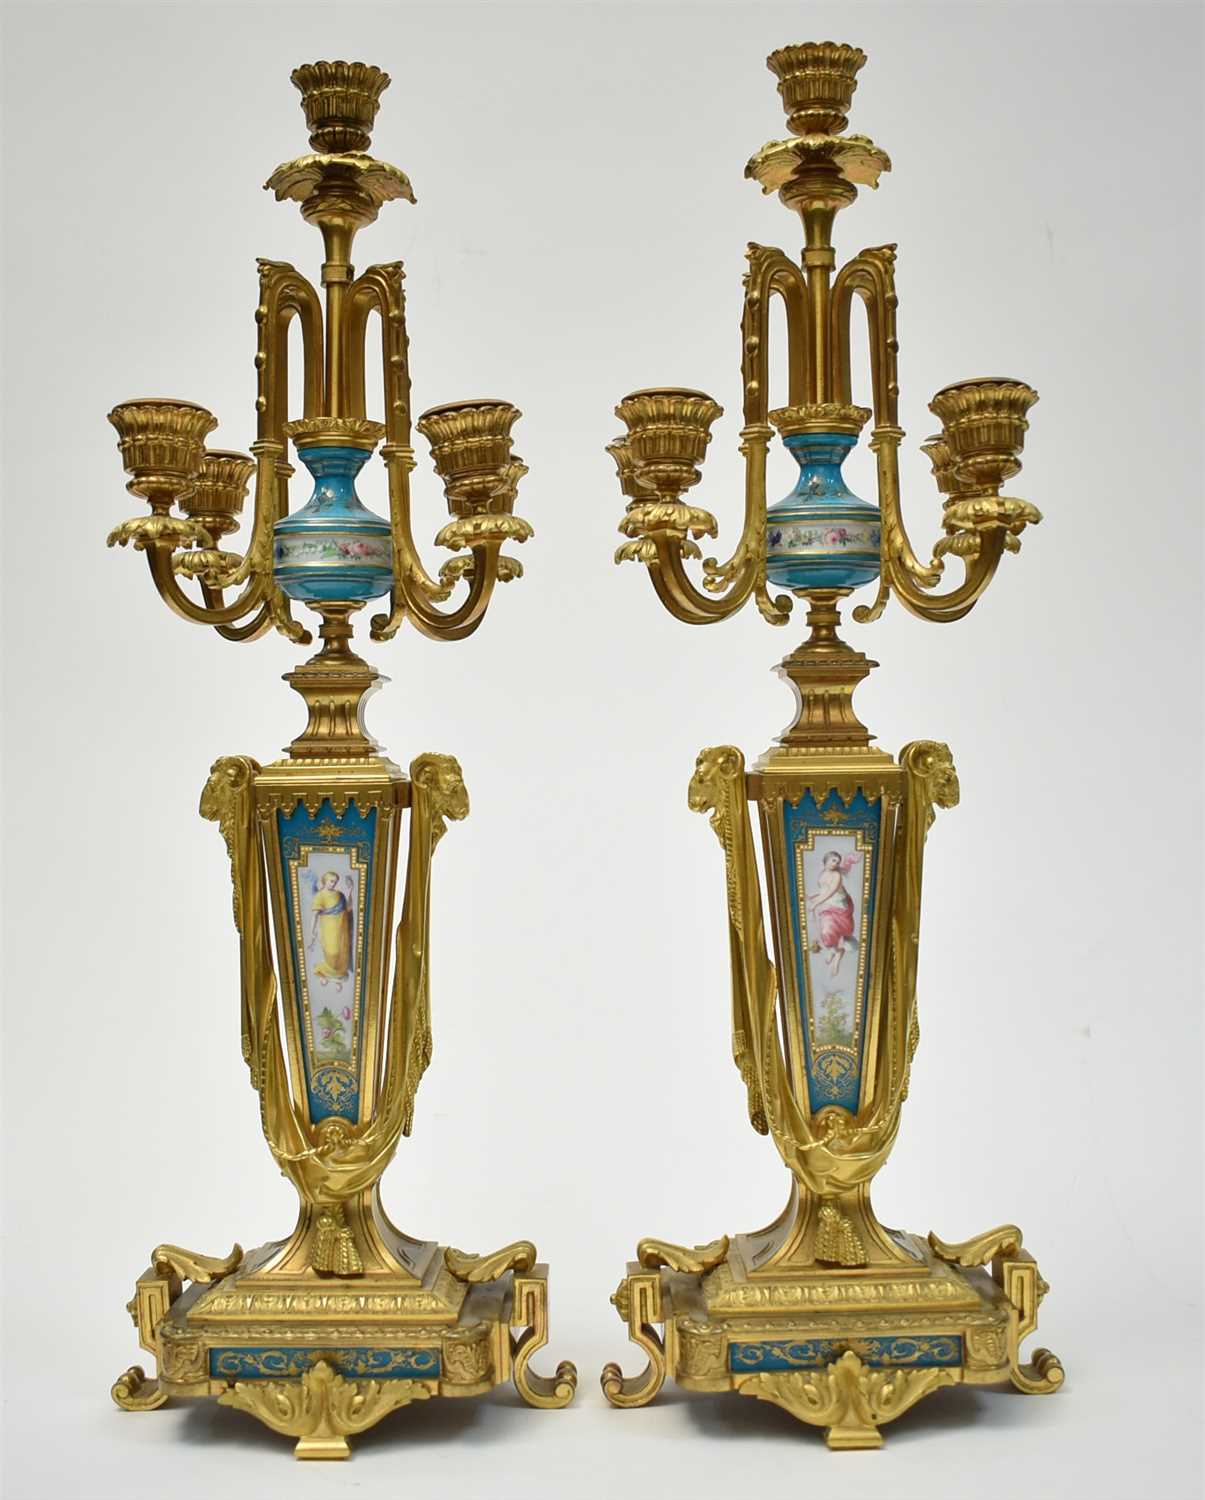 Lot 443 - A pair of candelabra